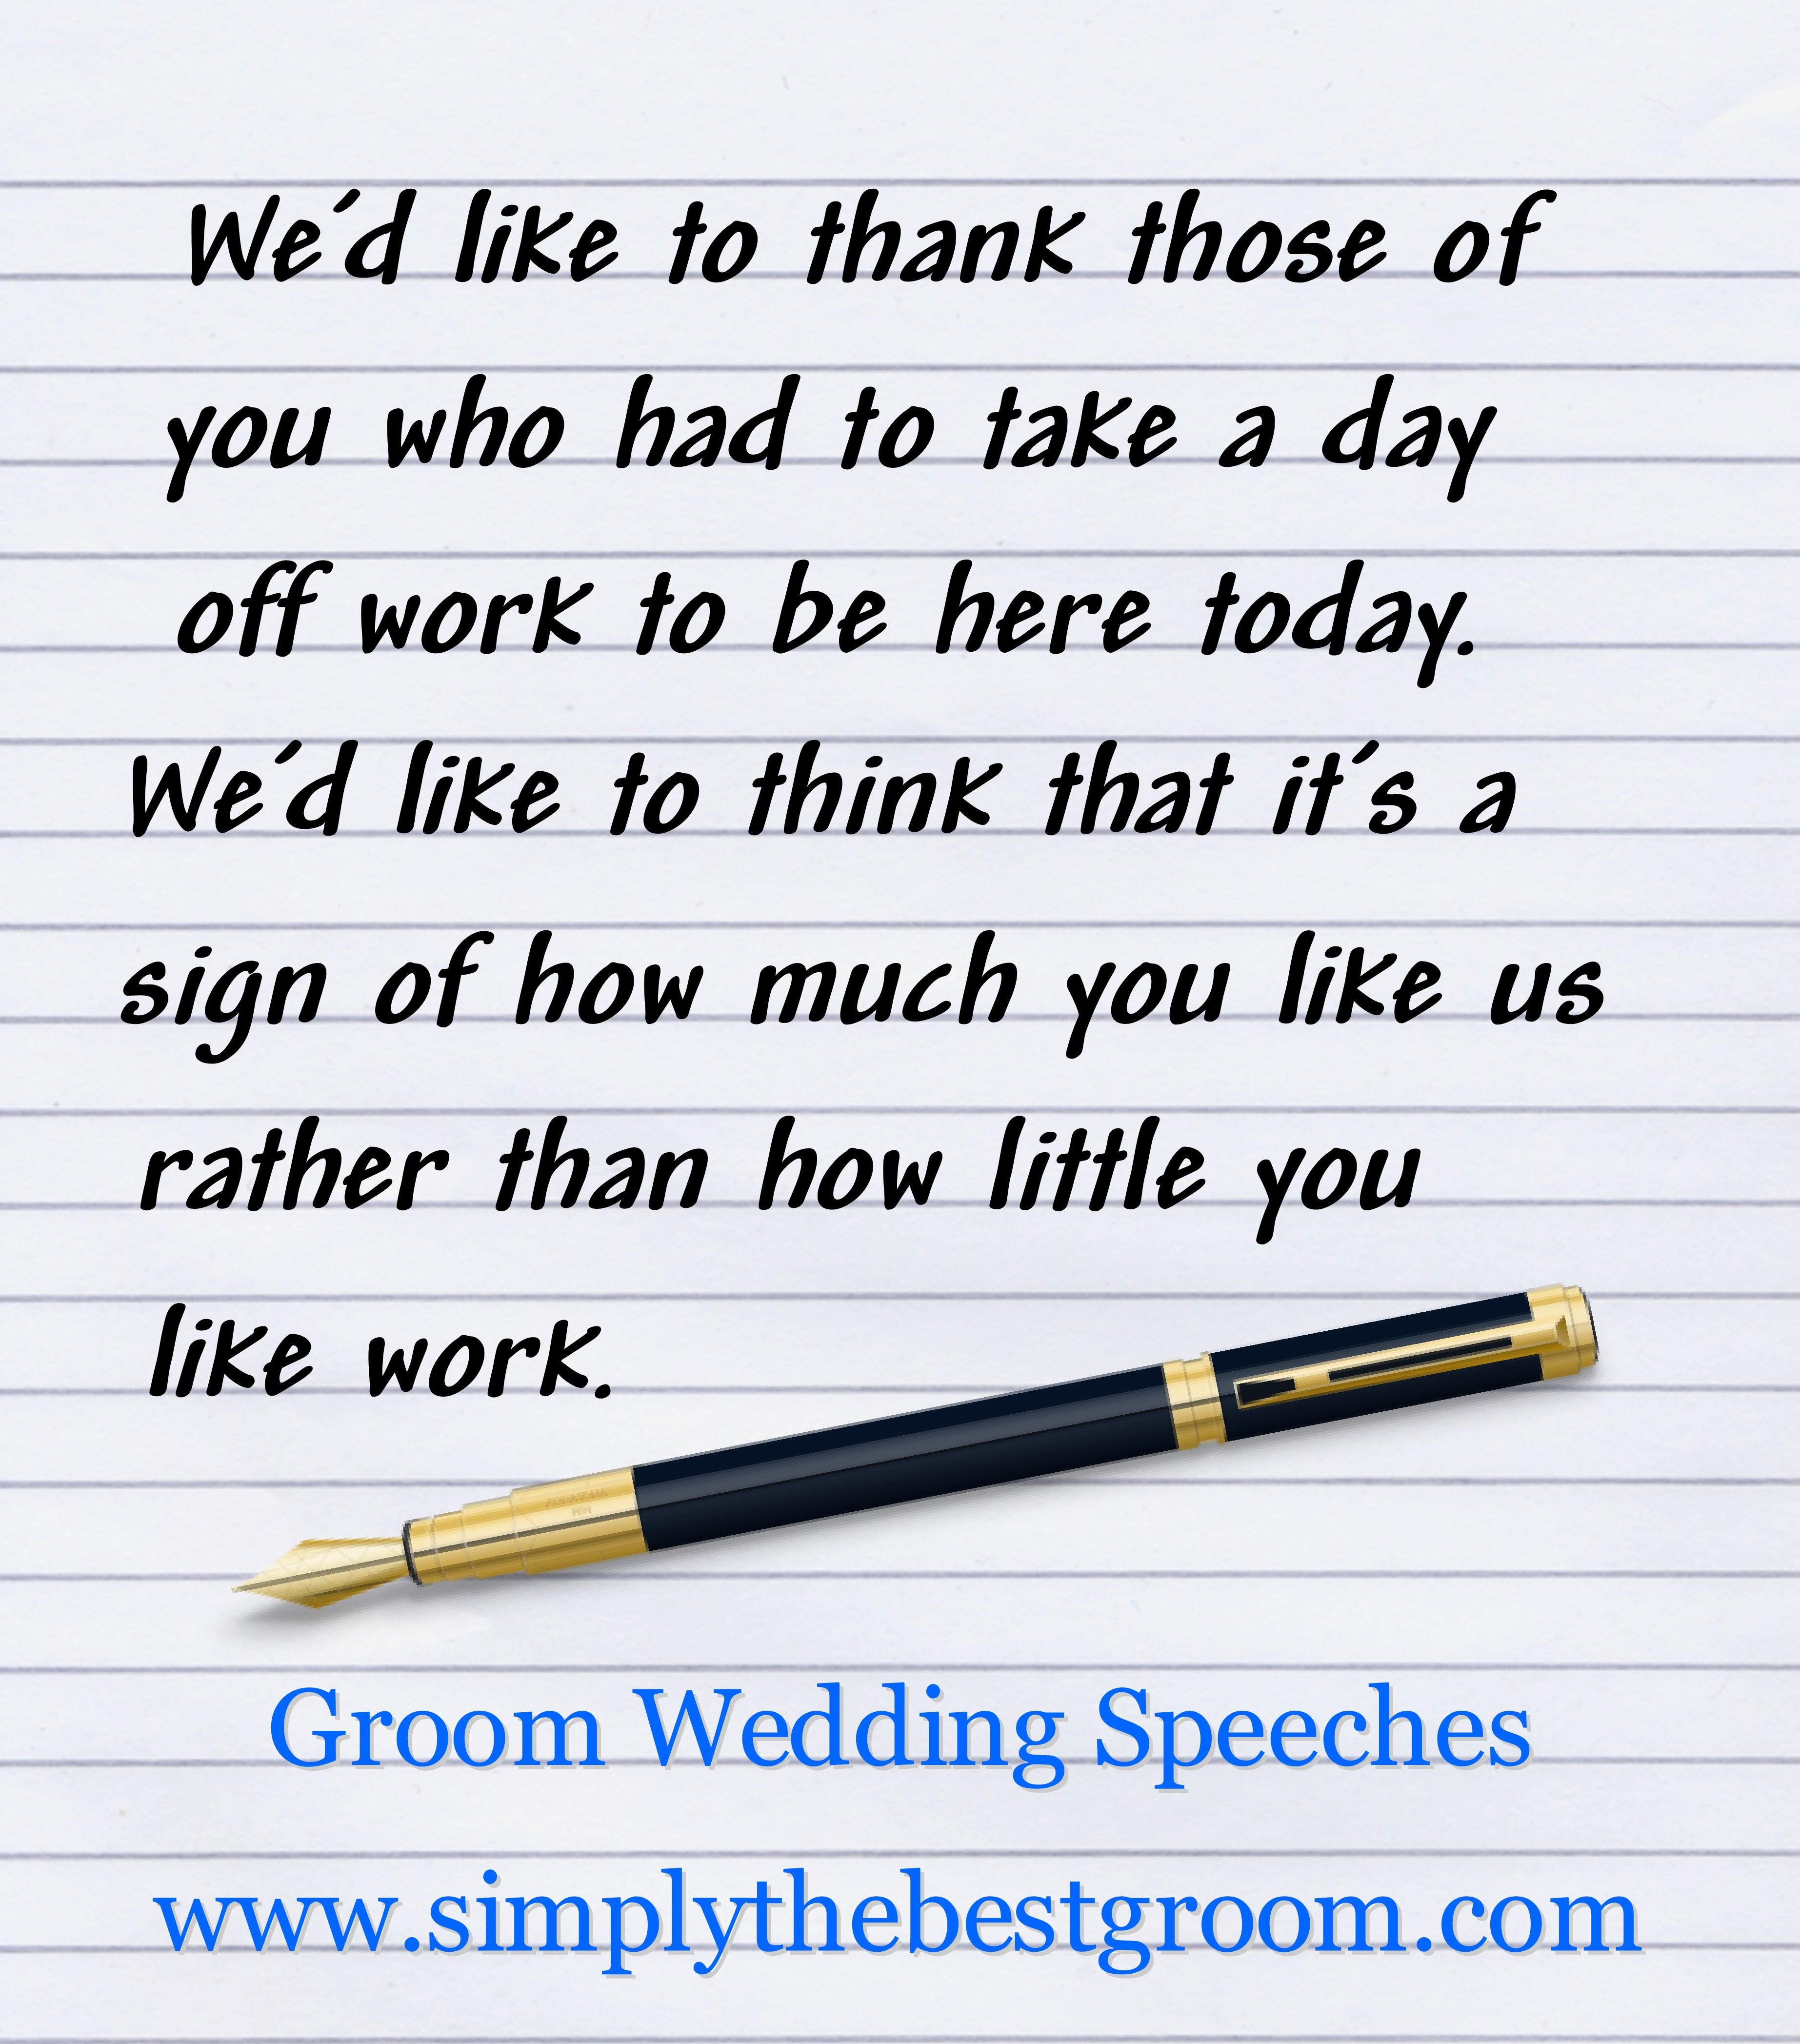 Building The Perfect Groom's Speech